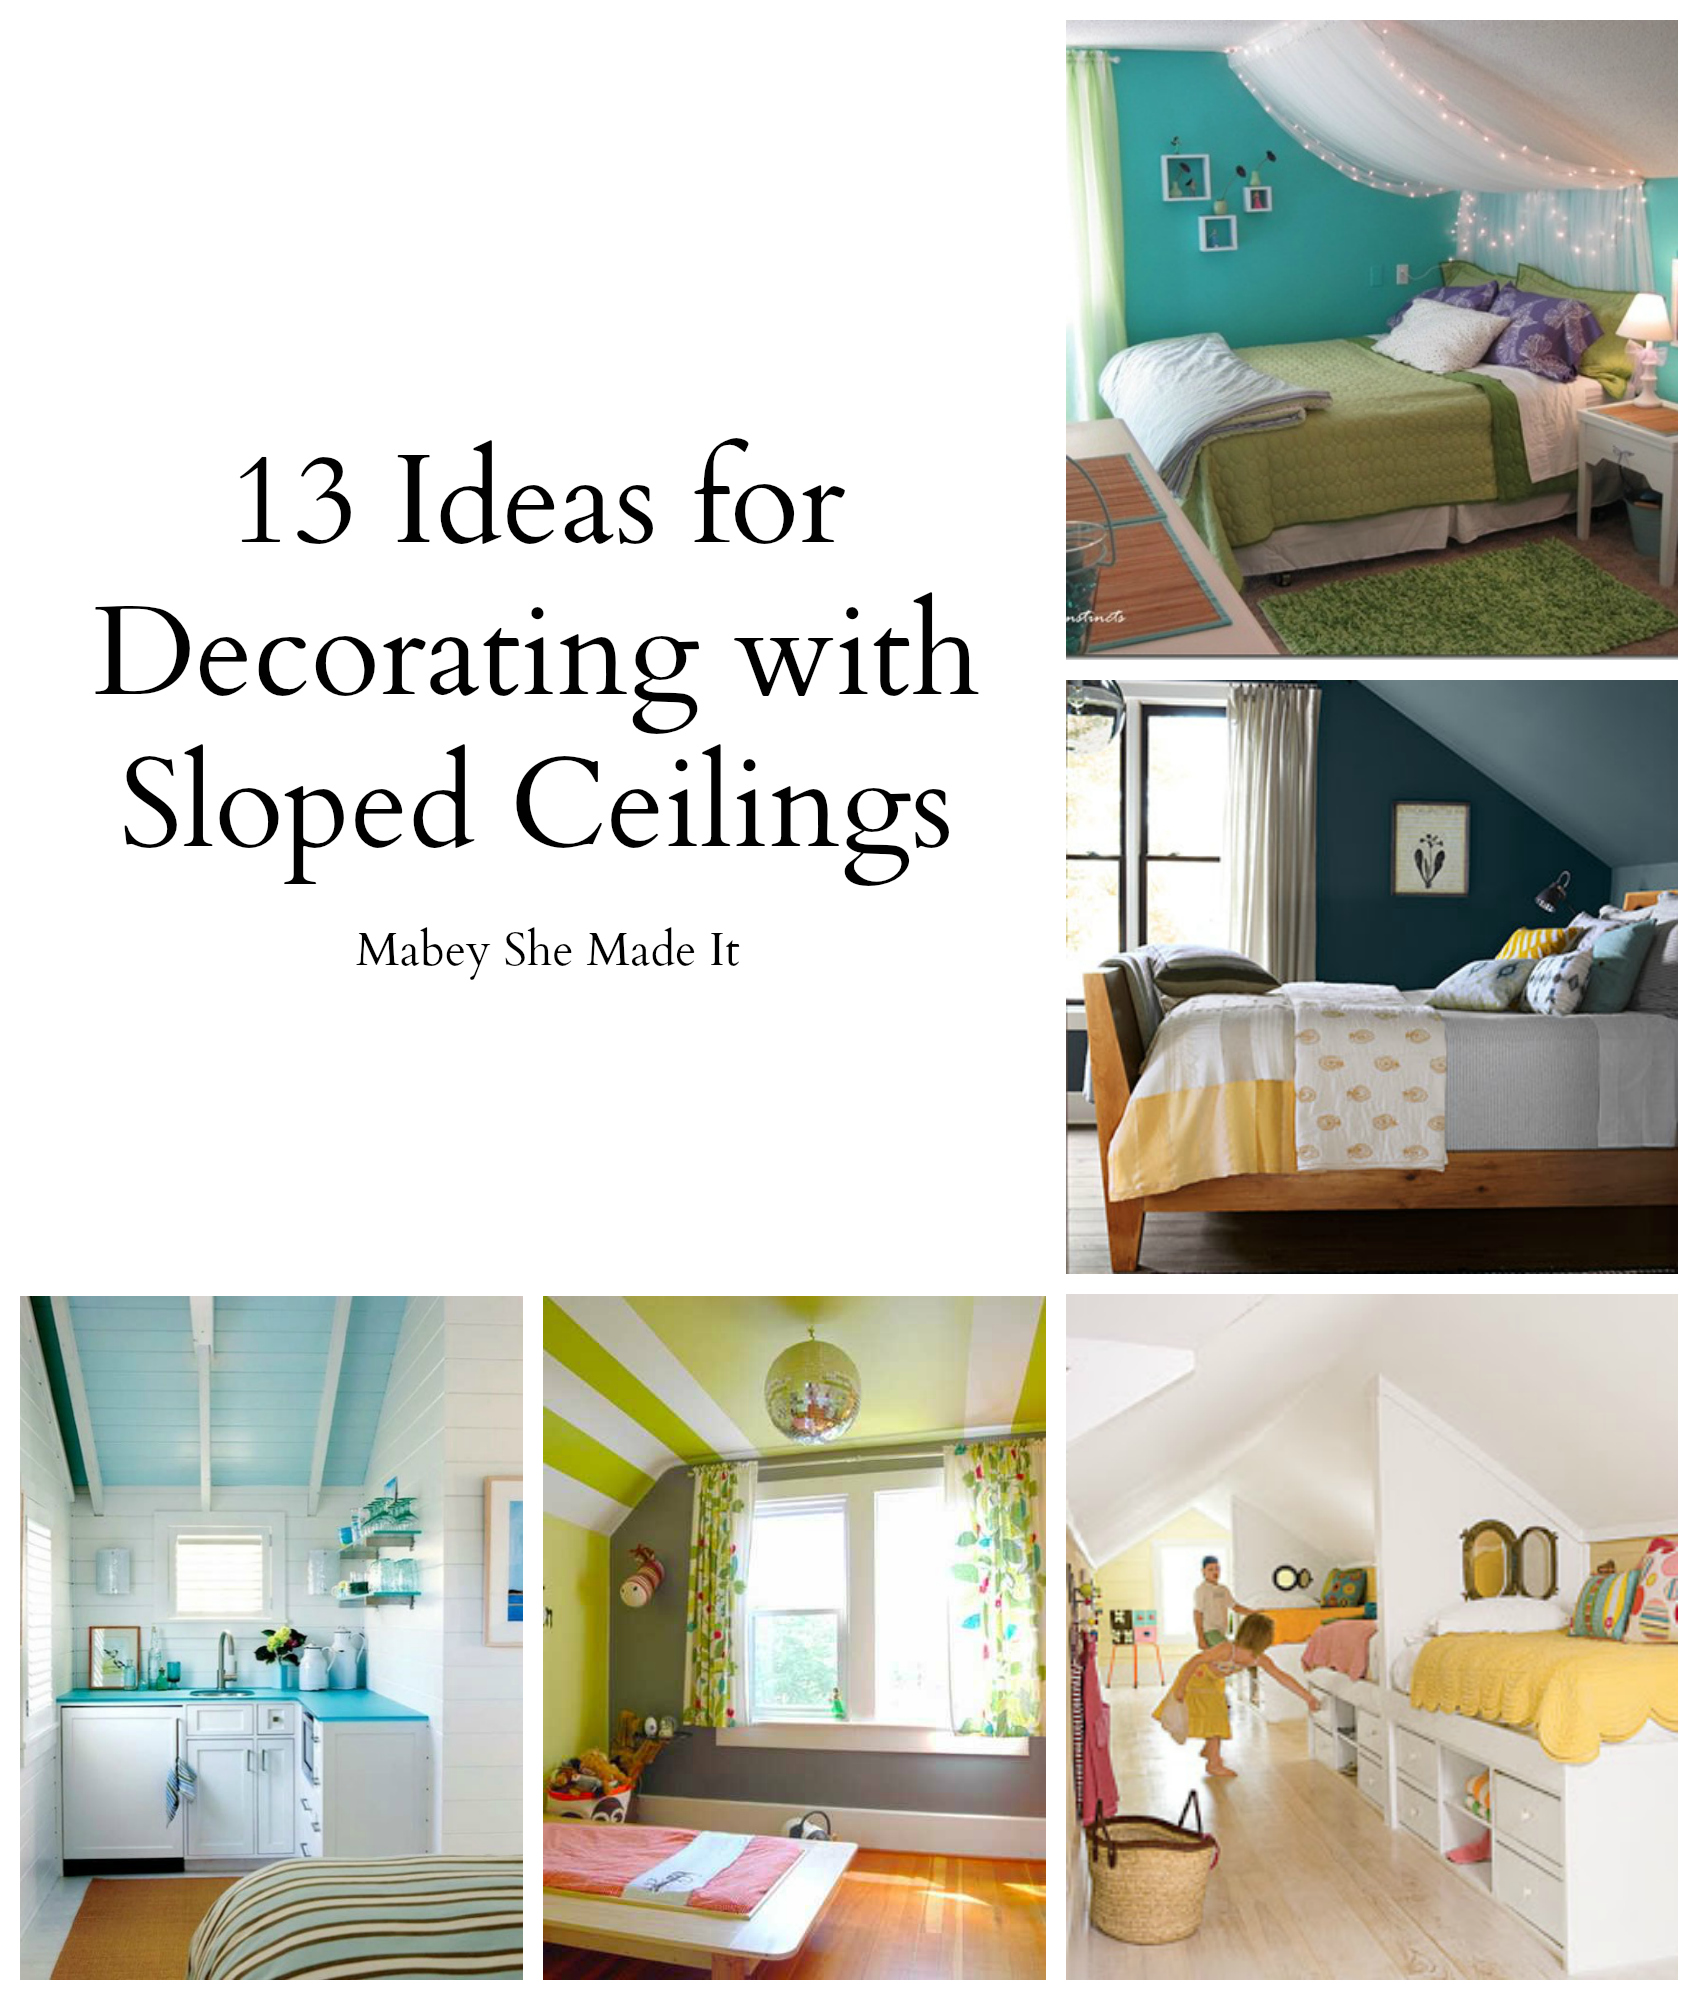 Small Bathroom Designs Slanted Ceiling 13+ ideas for decorating with a sloped ceiling | mabey she made it